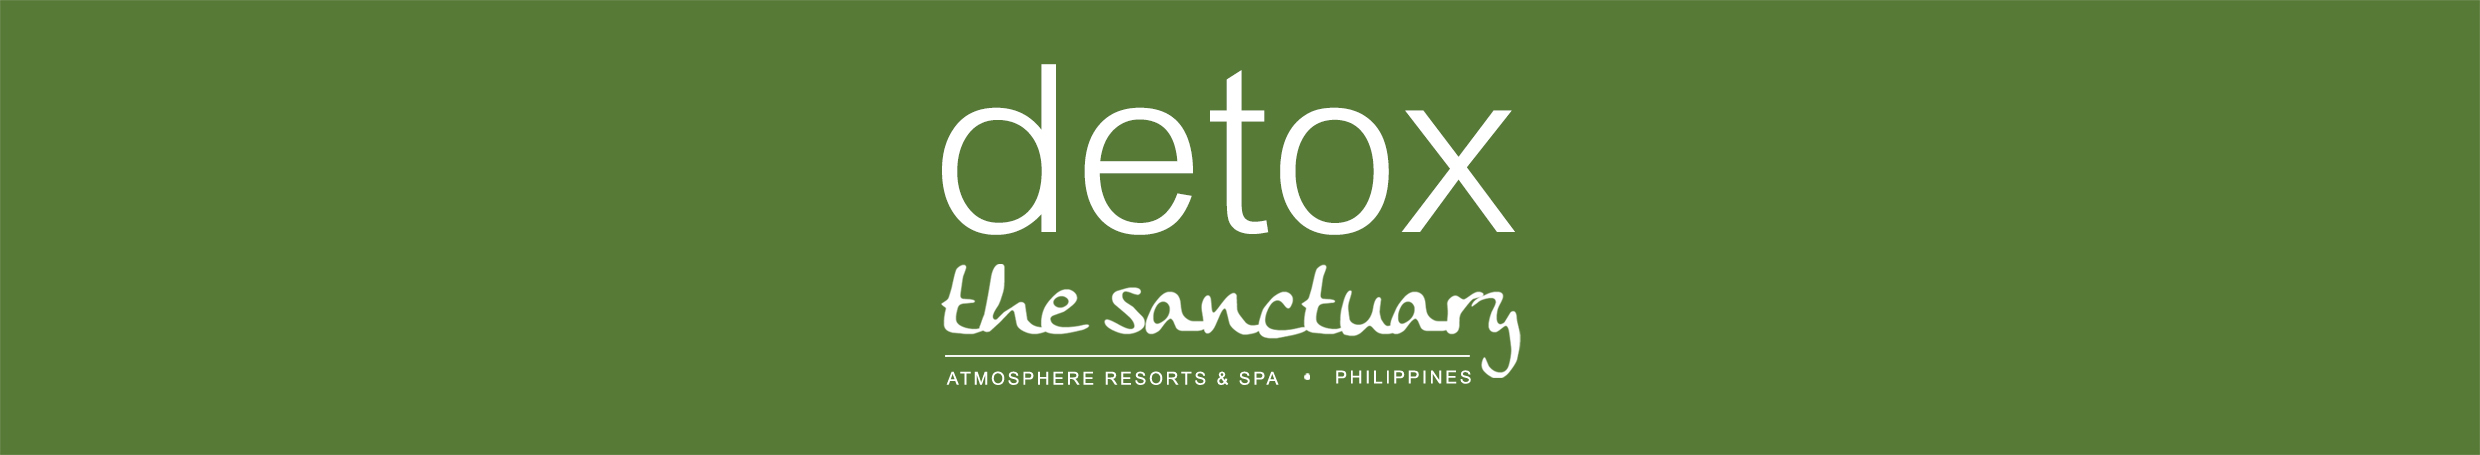 Detox programs at Atmosphere in the Philippines